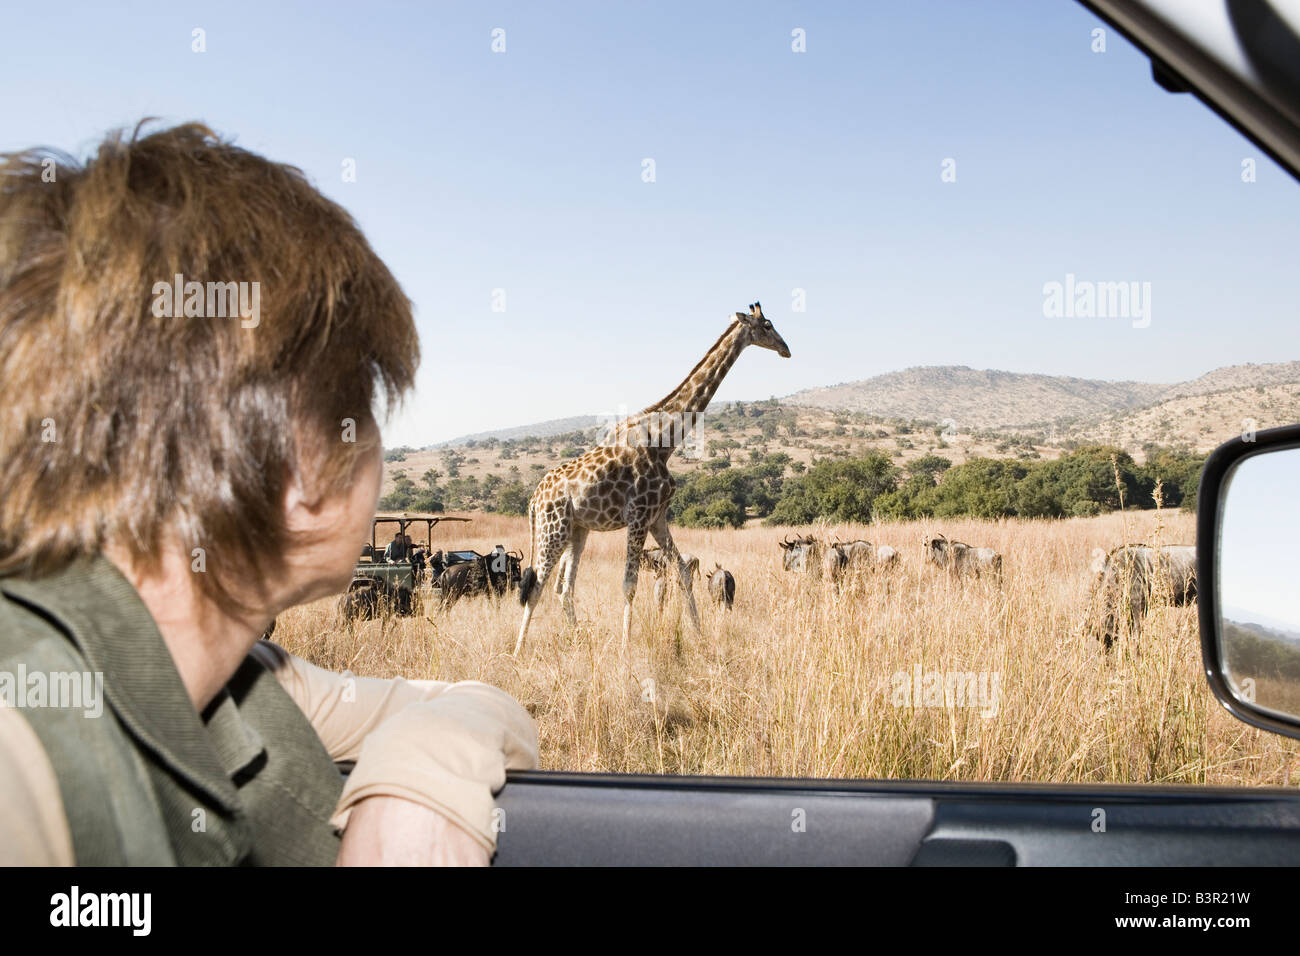 Safari vehicle with tourists, looking at giraffes, Glen Afrique, Gauteng, South Africa - Stock Image